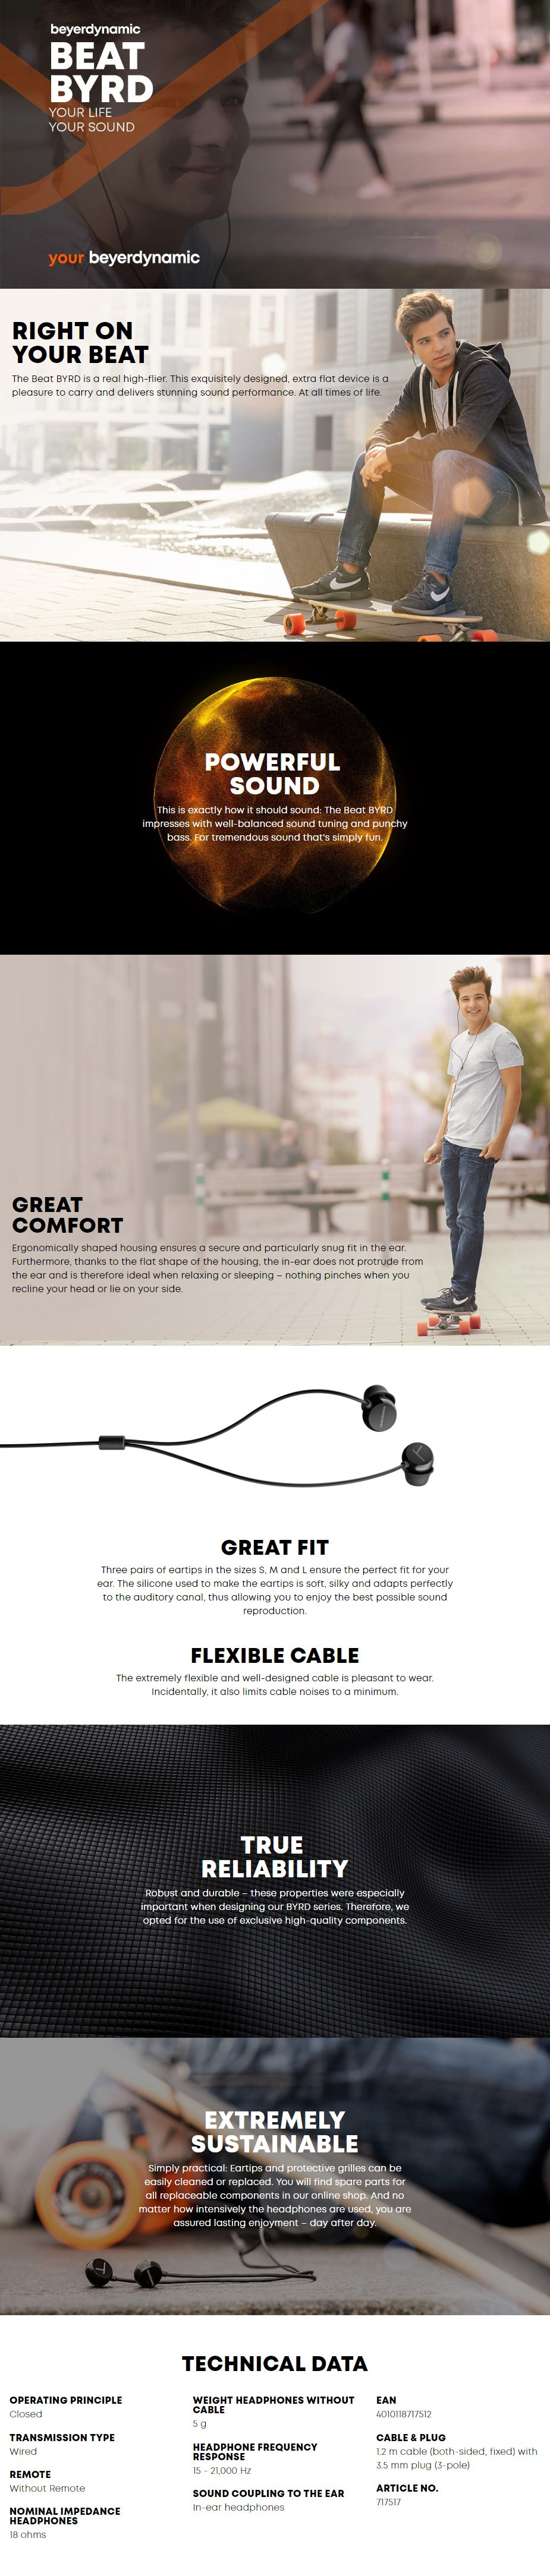 Beyerdynamic Beat Byrd In-Ear Headphones - Overview 1